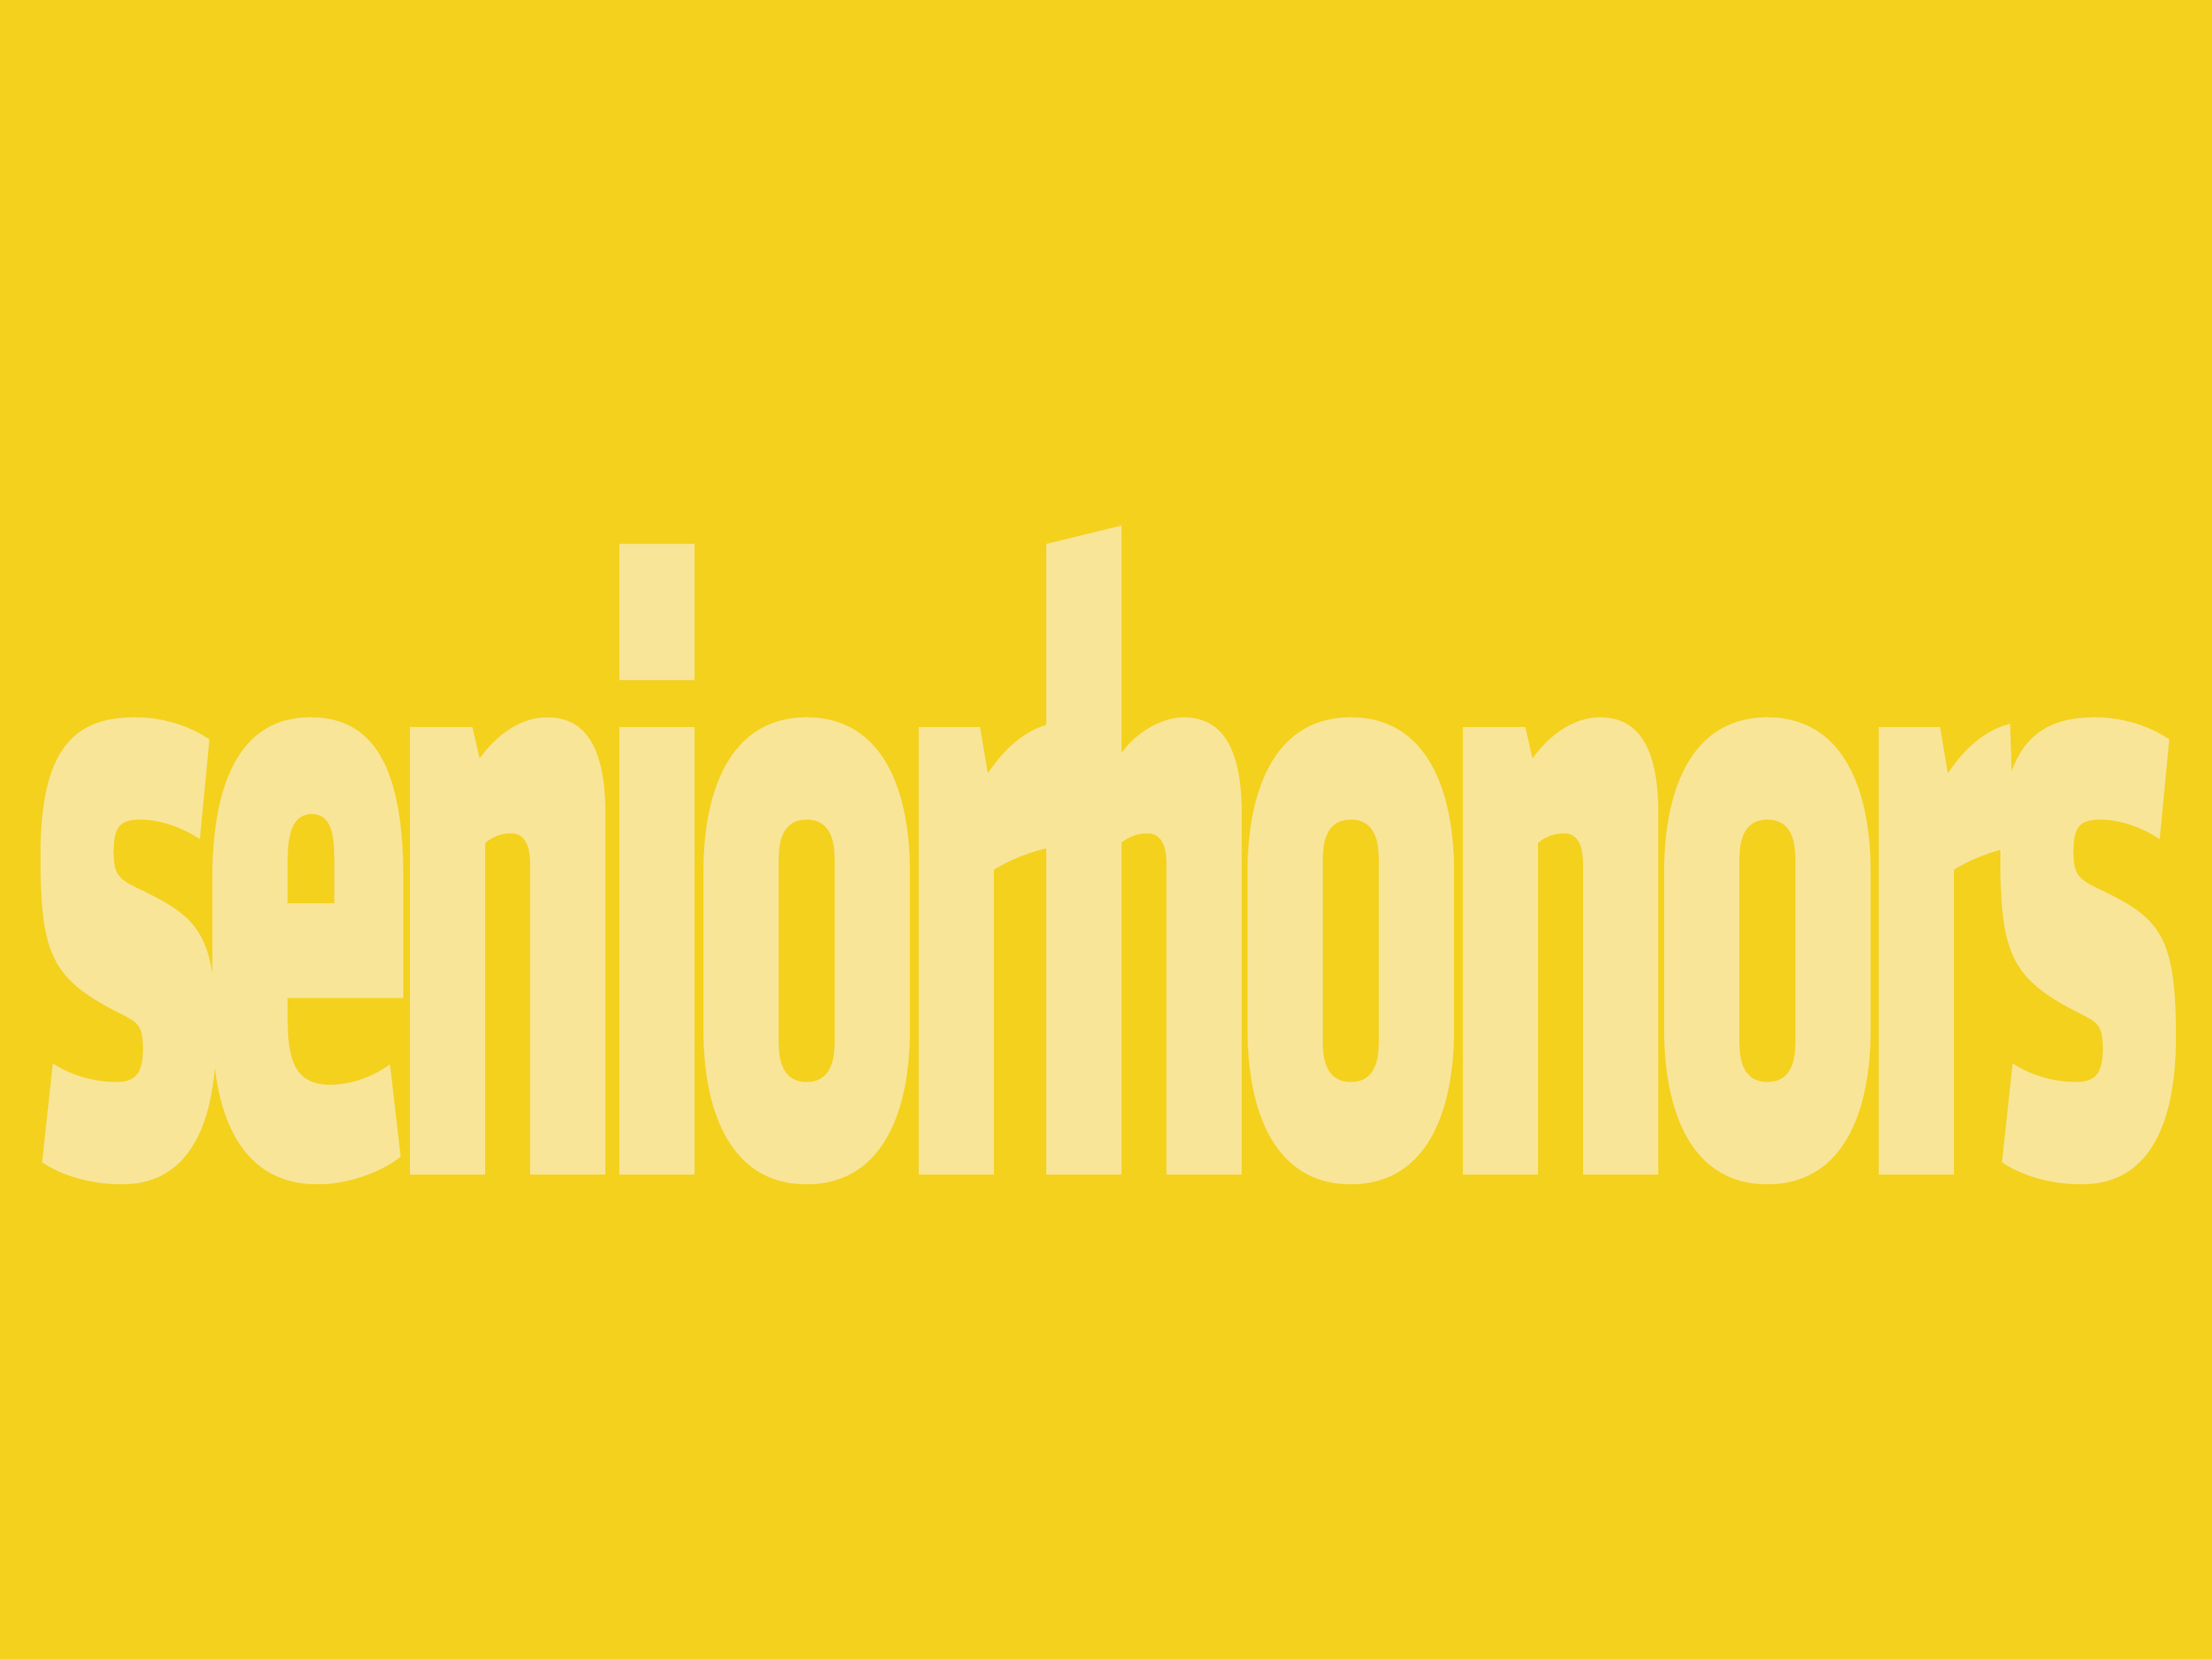 Senior Honors written in all lowercase on a yellow background.